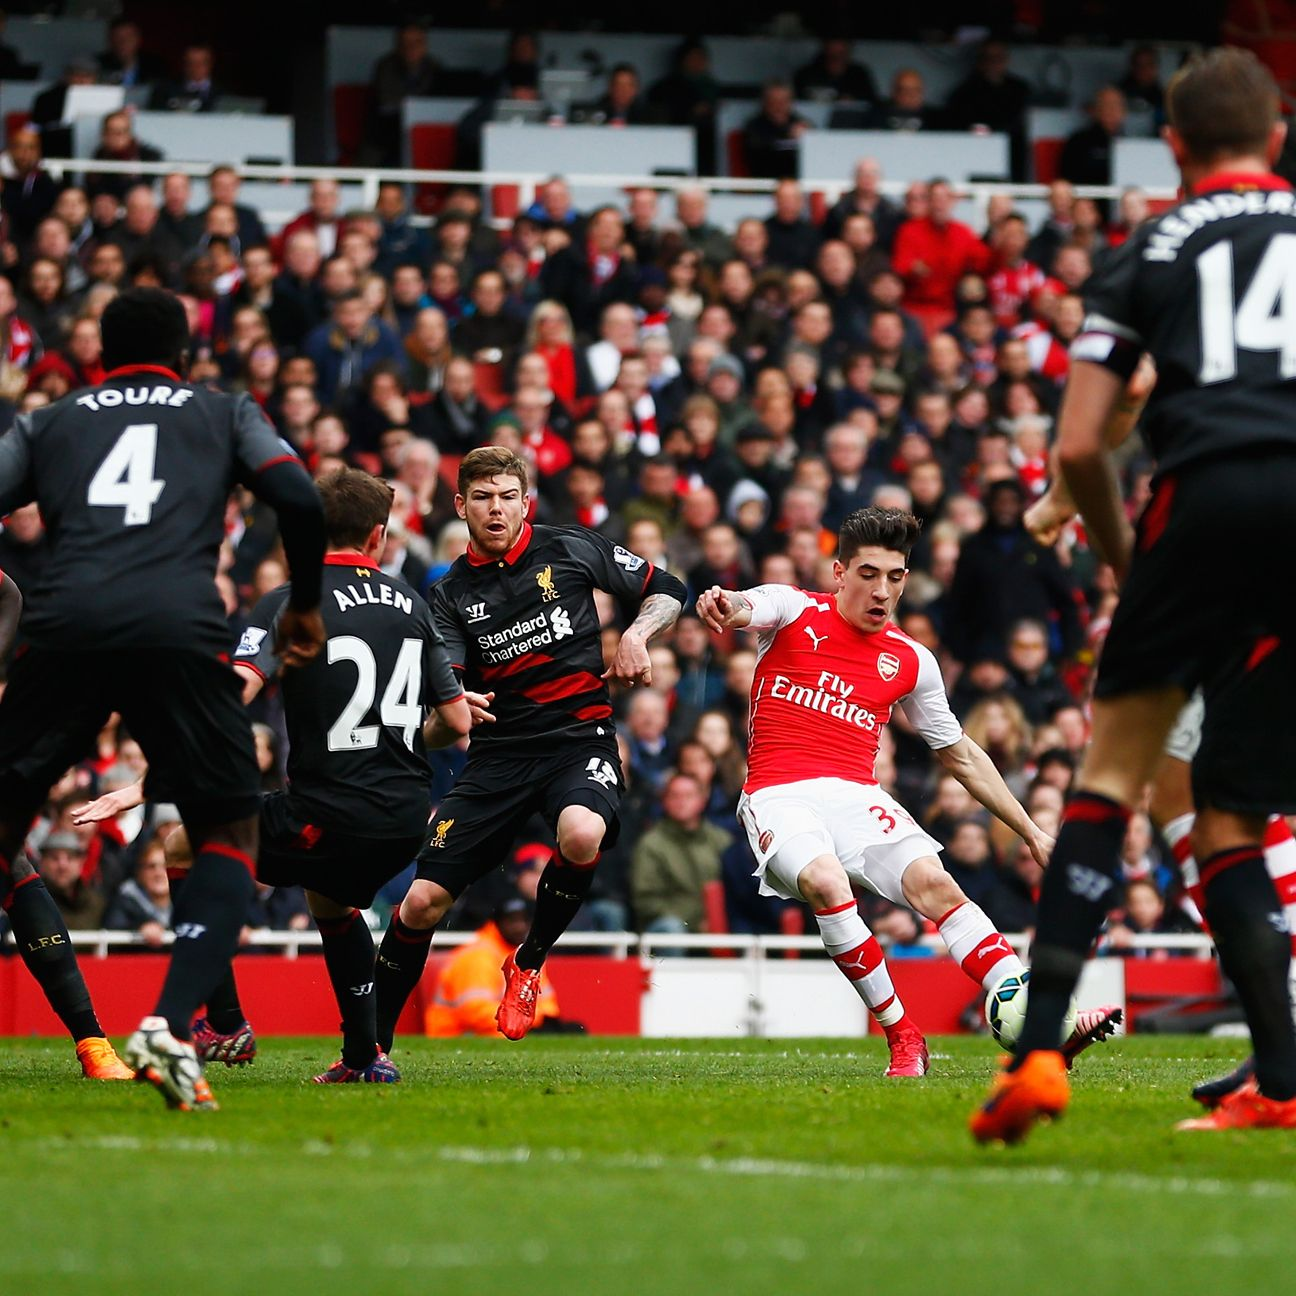 A second straight defeat this weekend would end Arsenal's hopes of finishing second.